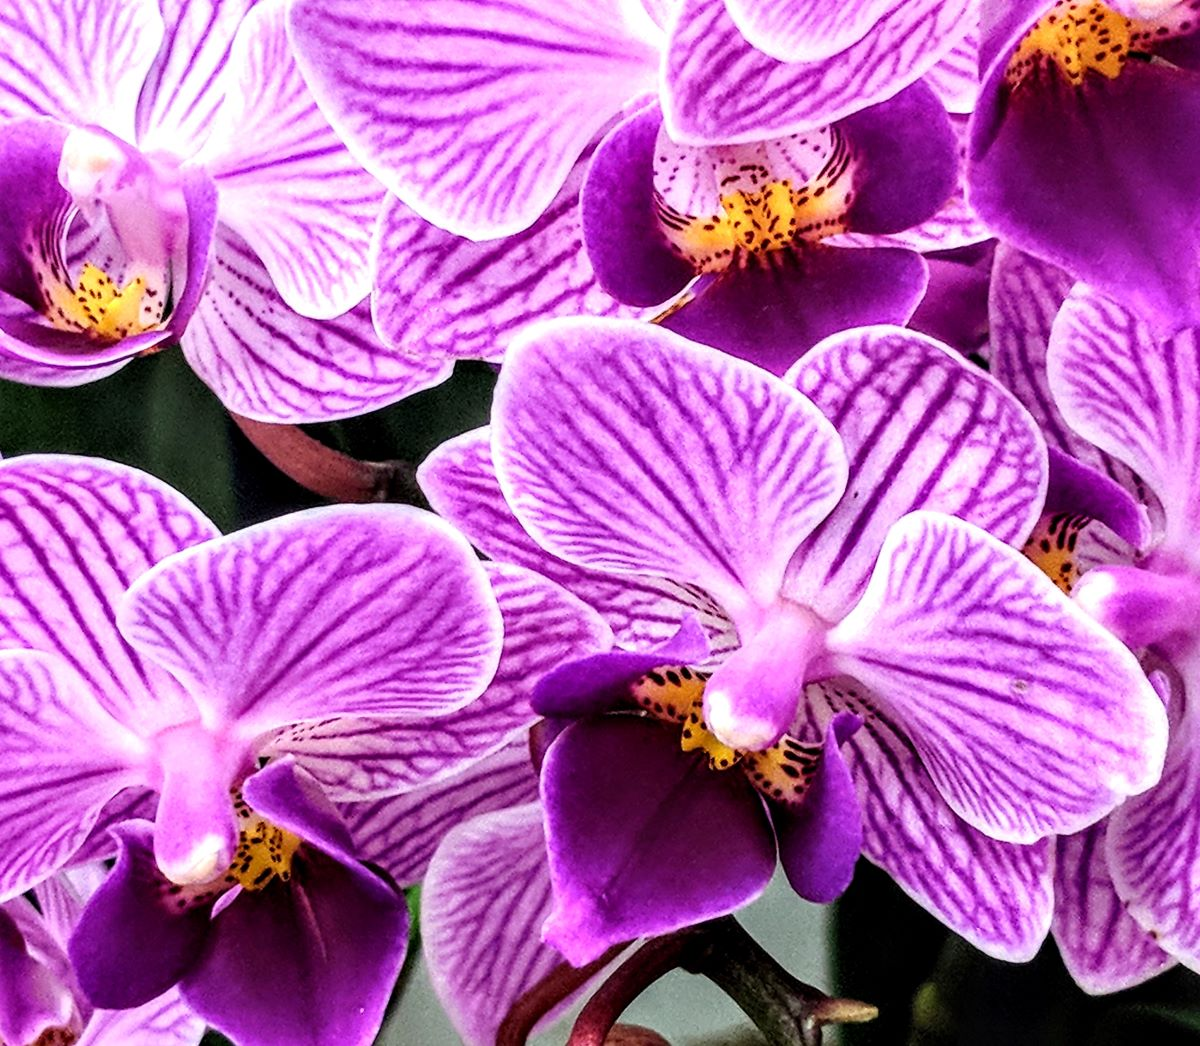 Orchid of the Month Clubs - Purple veragated orchids with yellow in the center